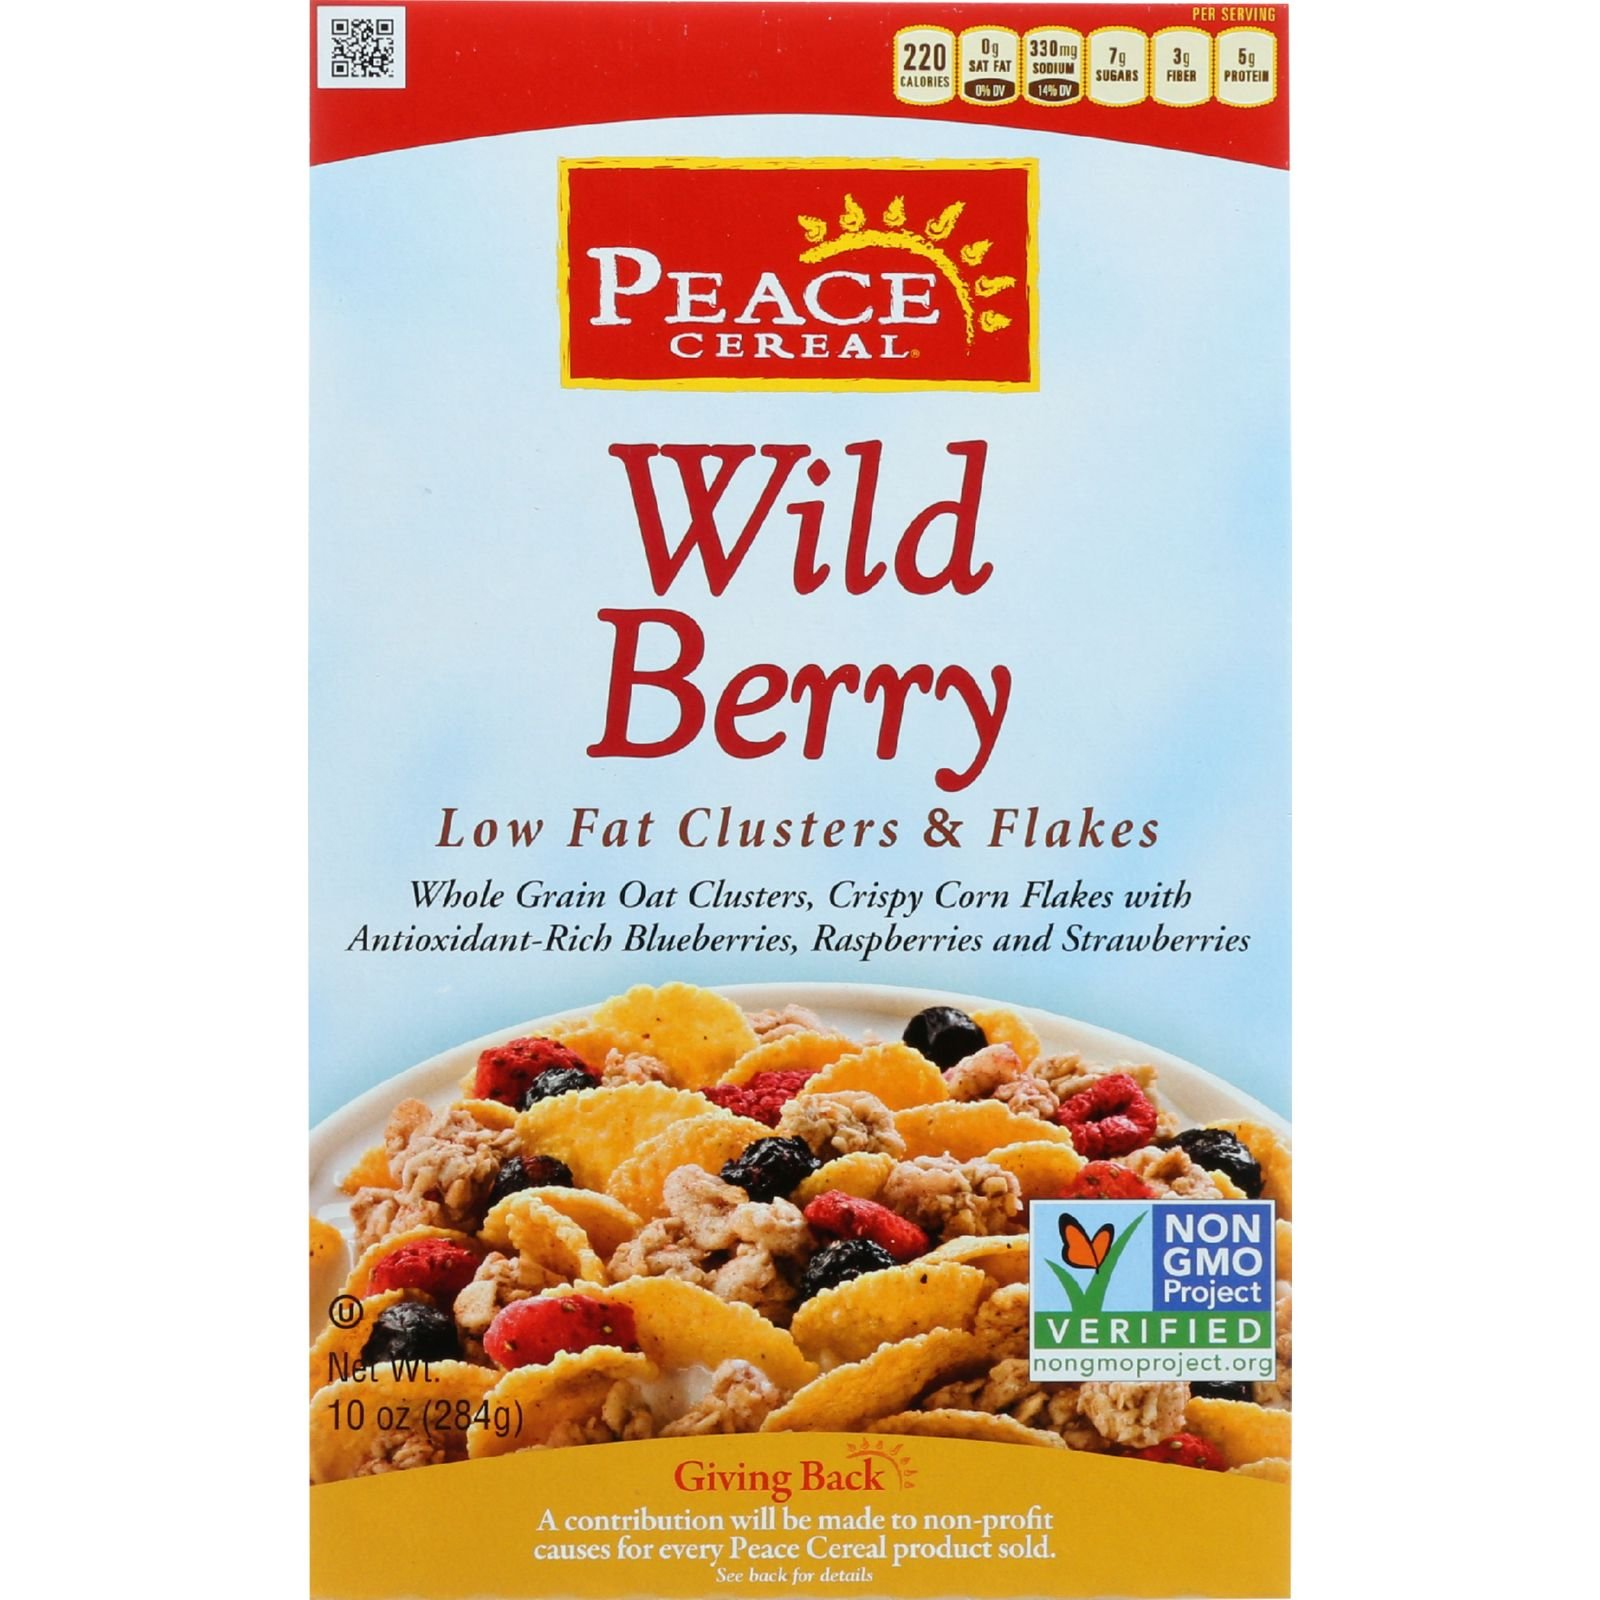 Peace Cereals Cereal - Clusters and Flakes - Low Fat - Wild Berry - 10 oz - case of 6 - - - - - -